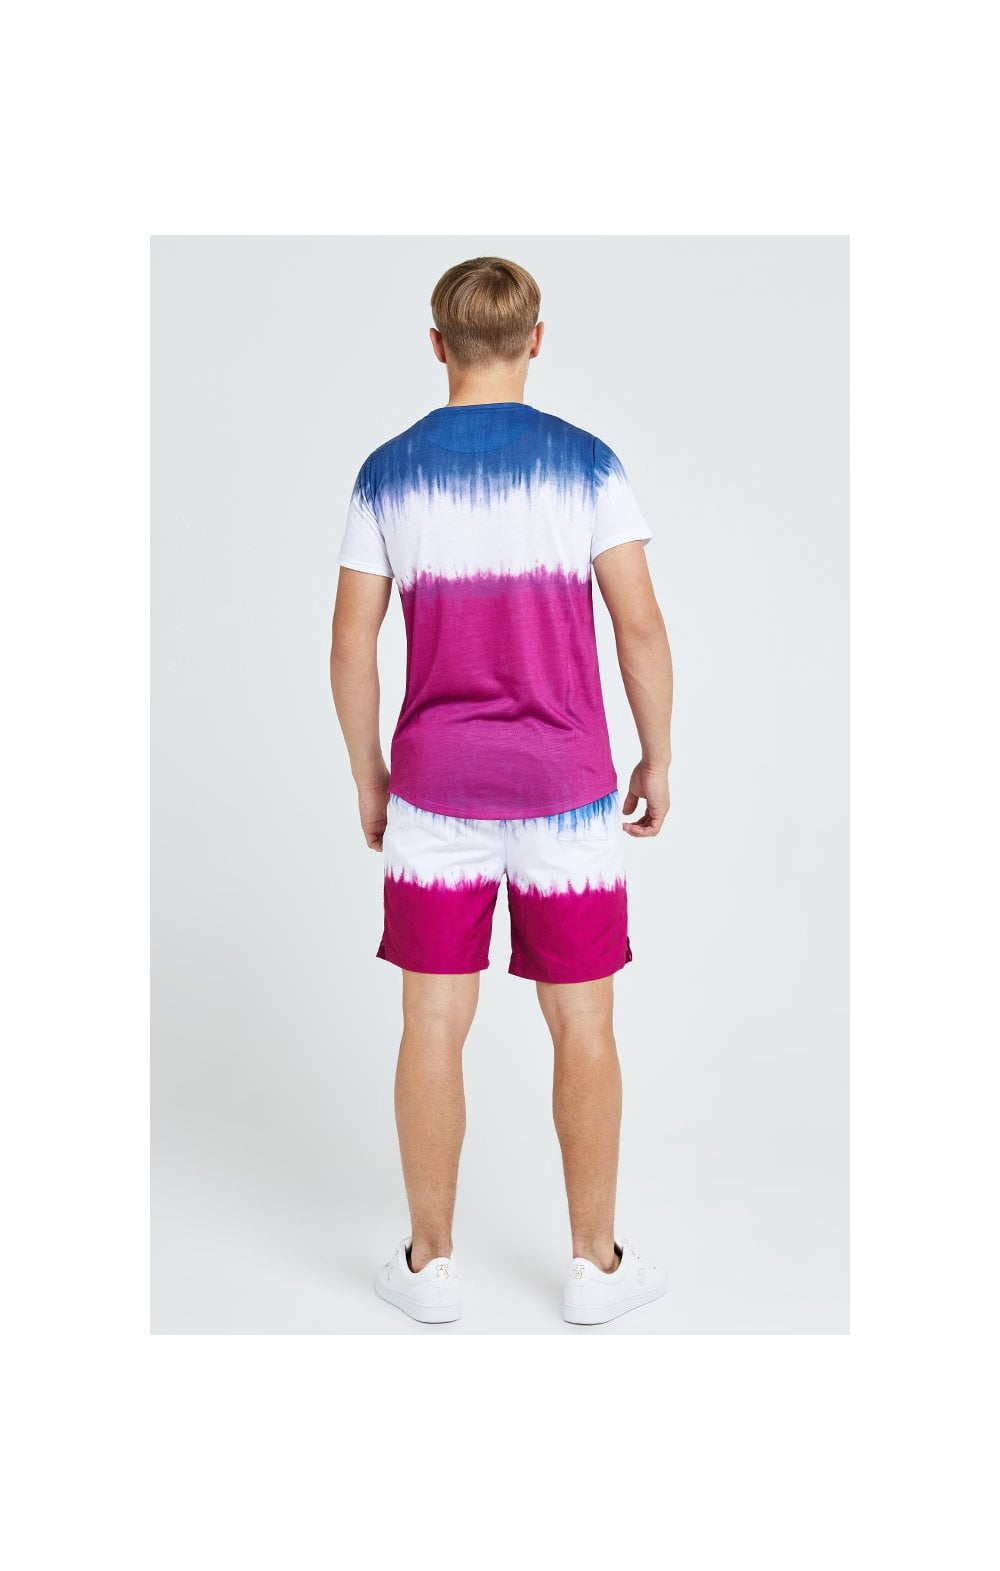 Illusive London Tie Fade Swim Shorts - Indigo, White & Pink (7)